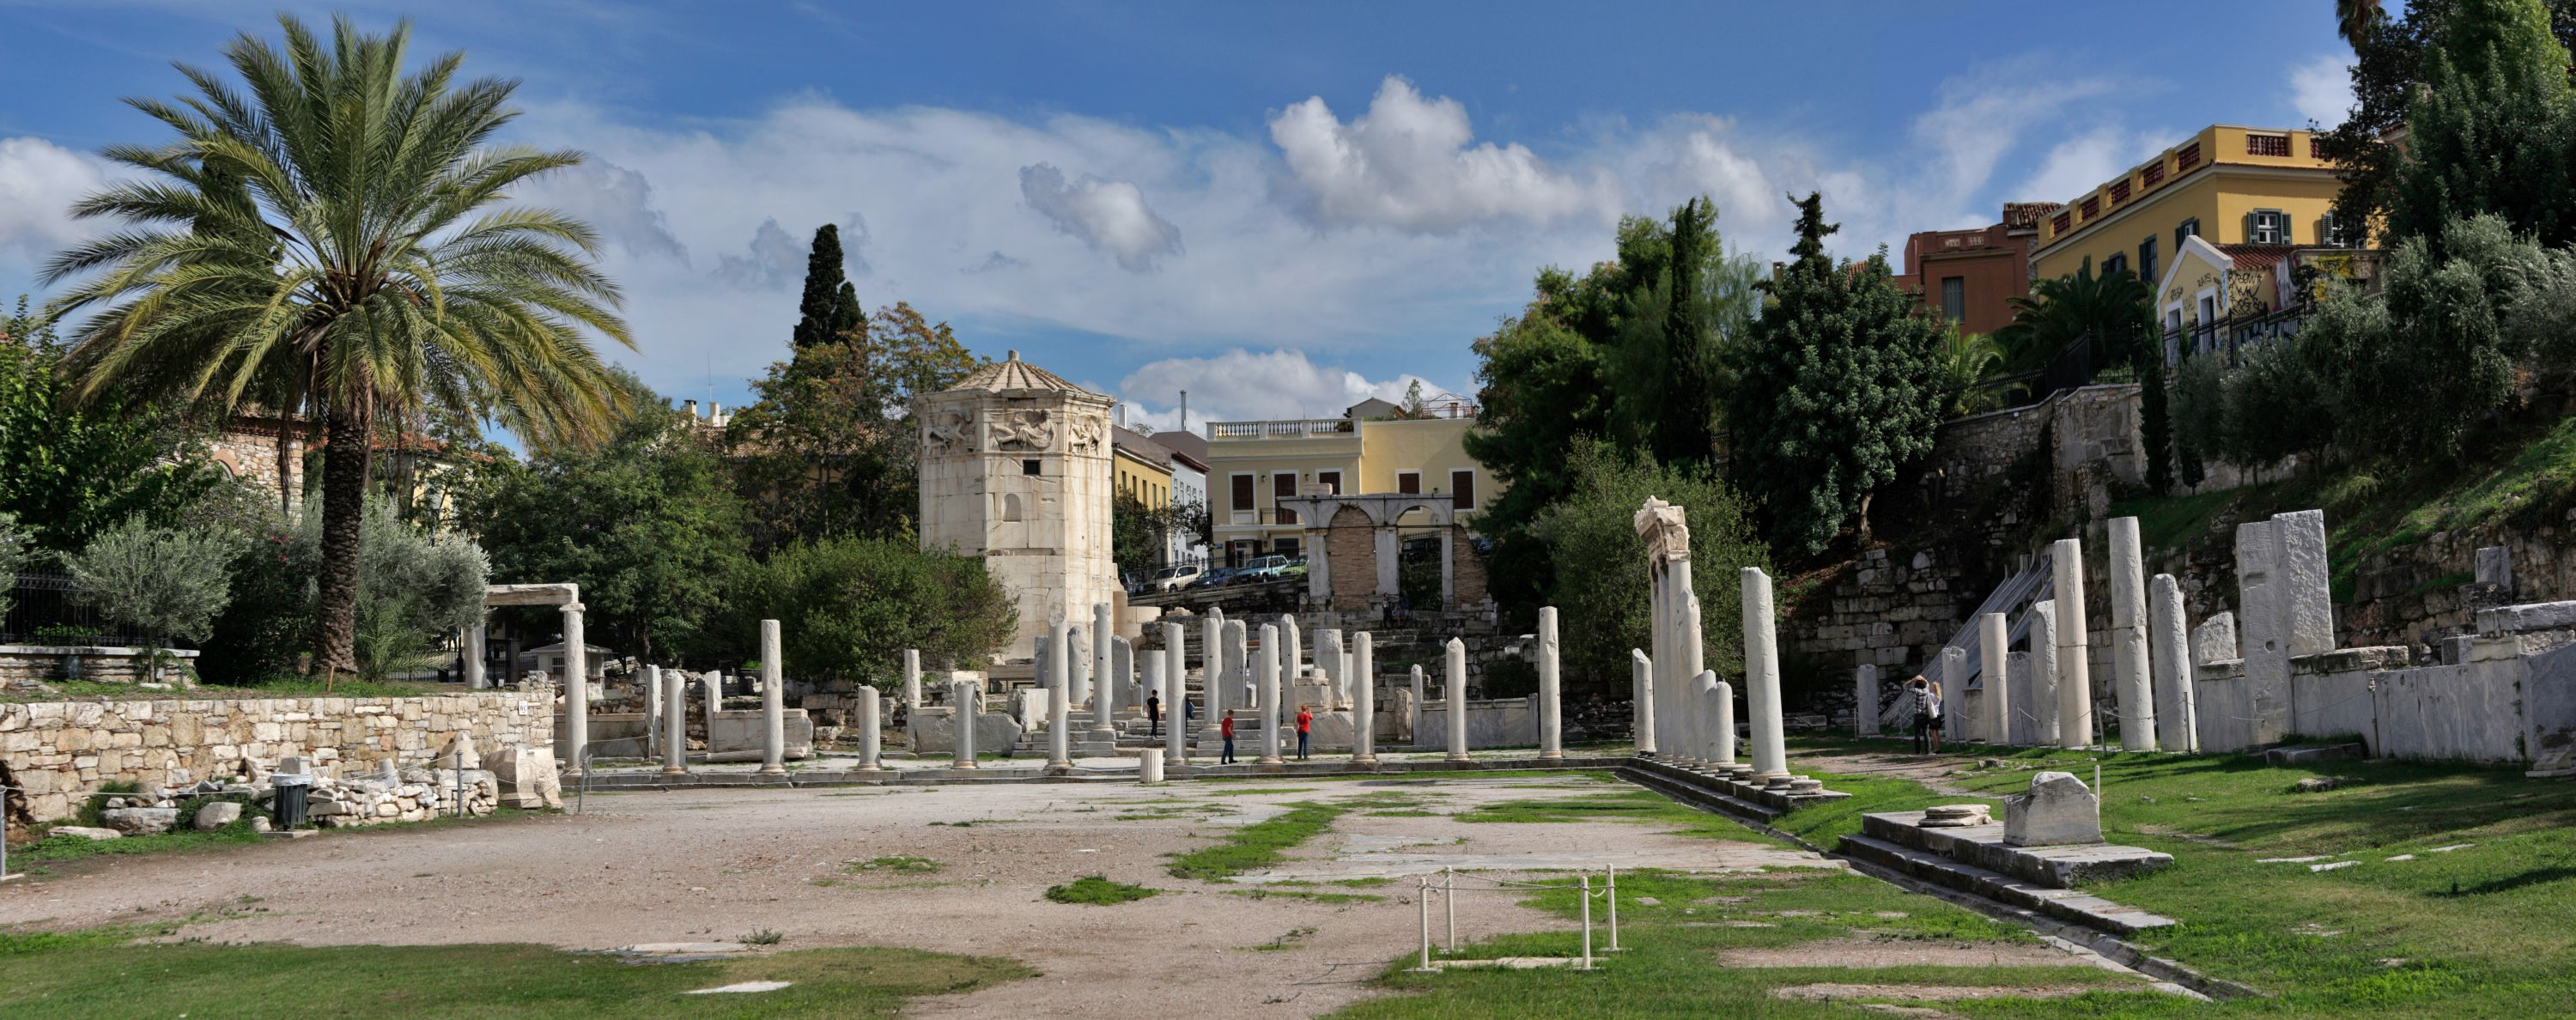 "The Roman Agora of Athens and the famous ""Tower of the Winds"" (photo by Andreas Trepte)"